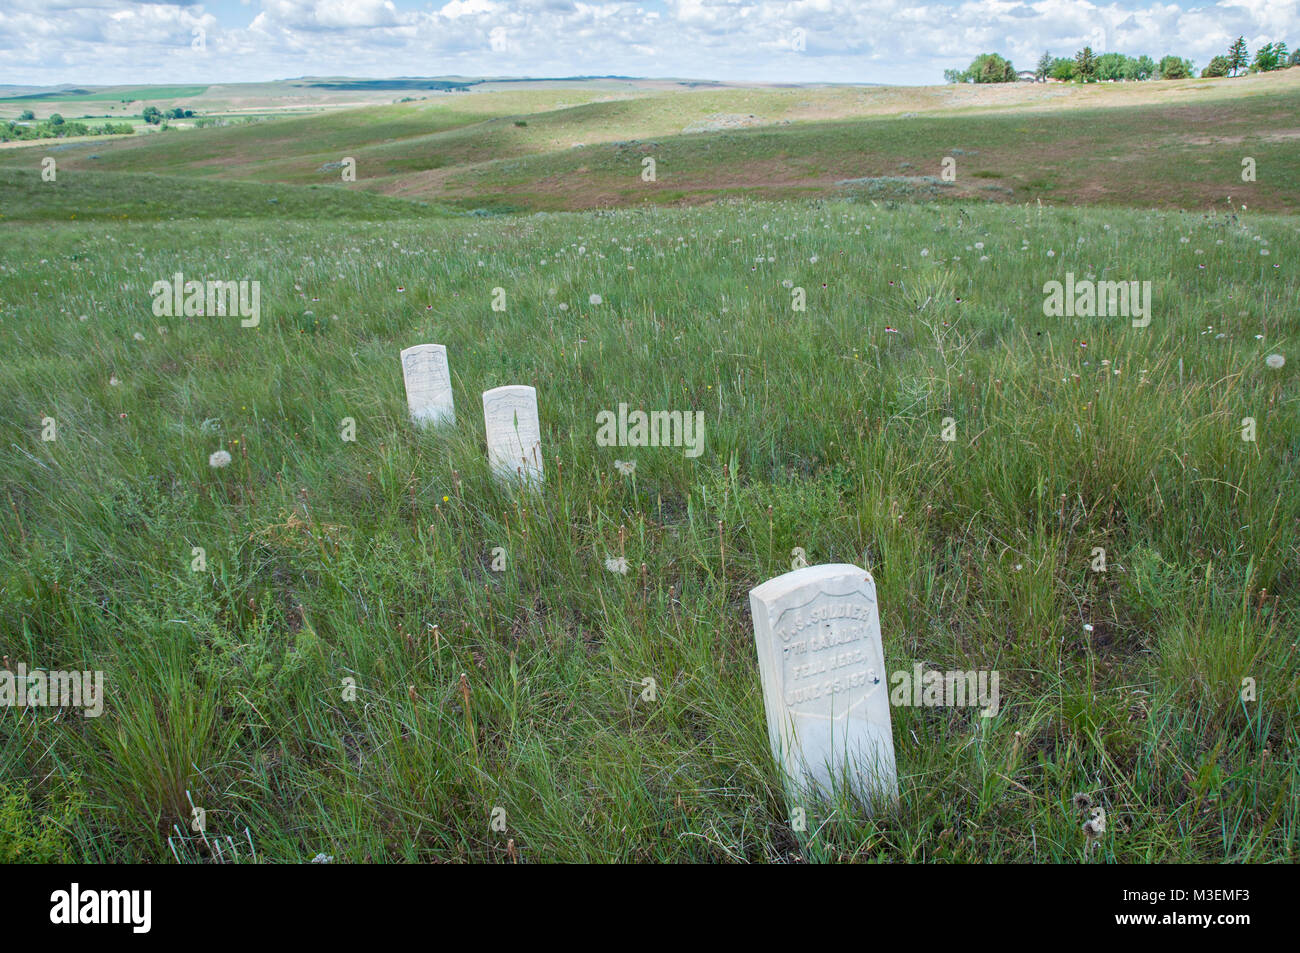 Crow Agency, MT - July 6, 2010: Markers show where US Soldiers fell during the Battle of Little Bighorn. Stock Photo